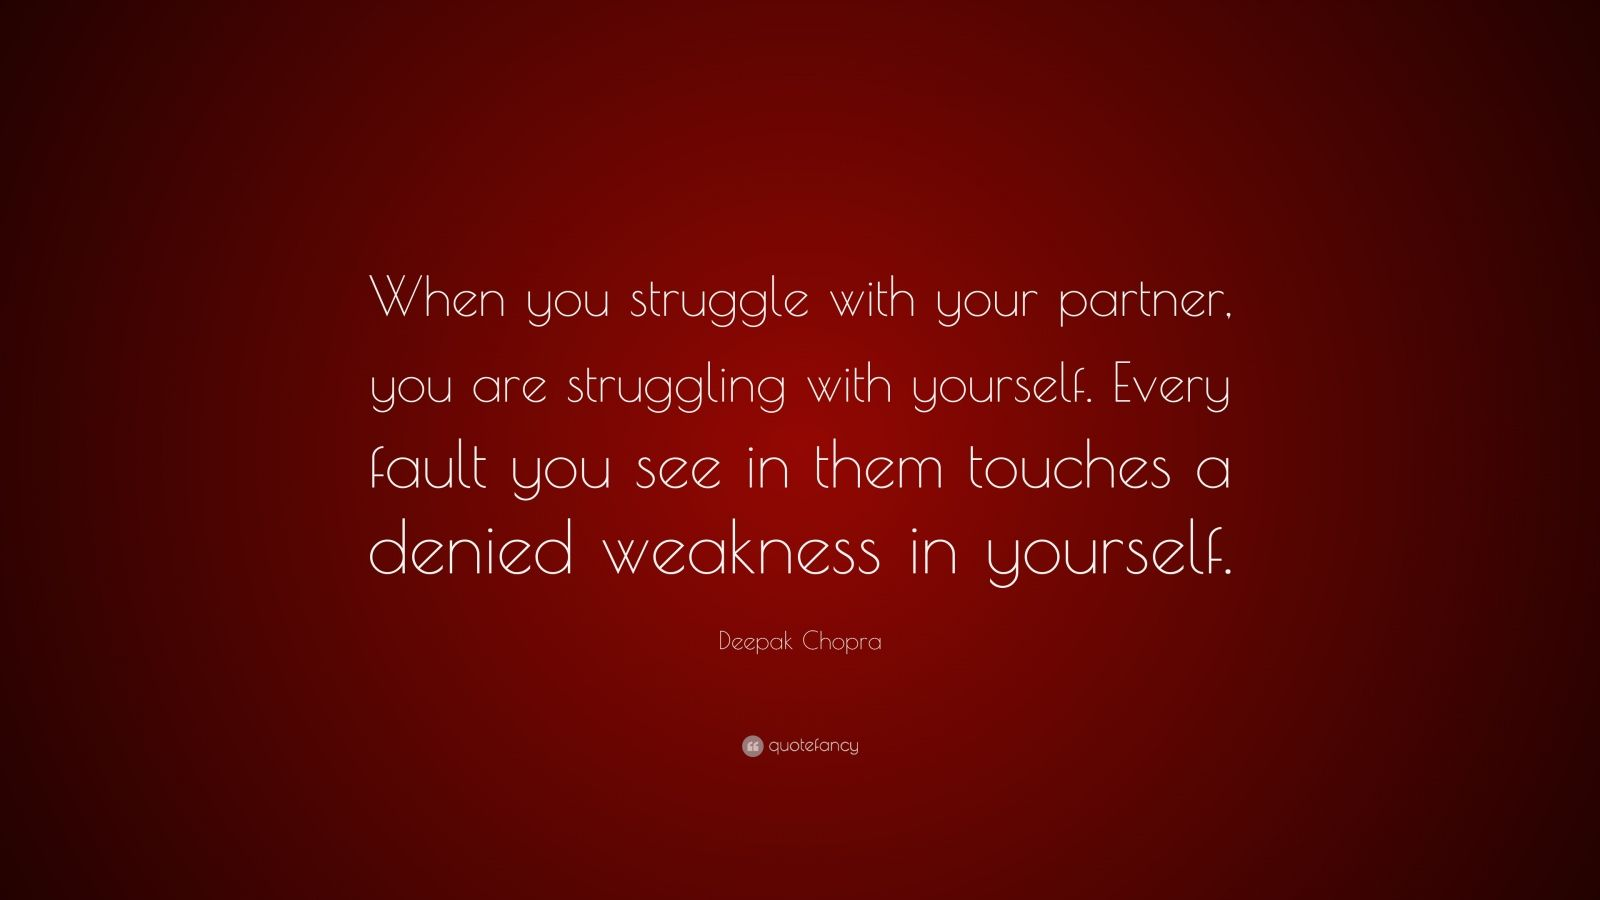 """Deepak Chopra Quote: """"When you struggle with your partner, you are struggling with yourself. Every fault you see in them touches a denied weakness in yourself."""""""